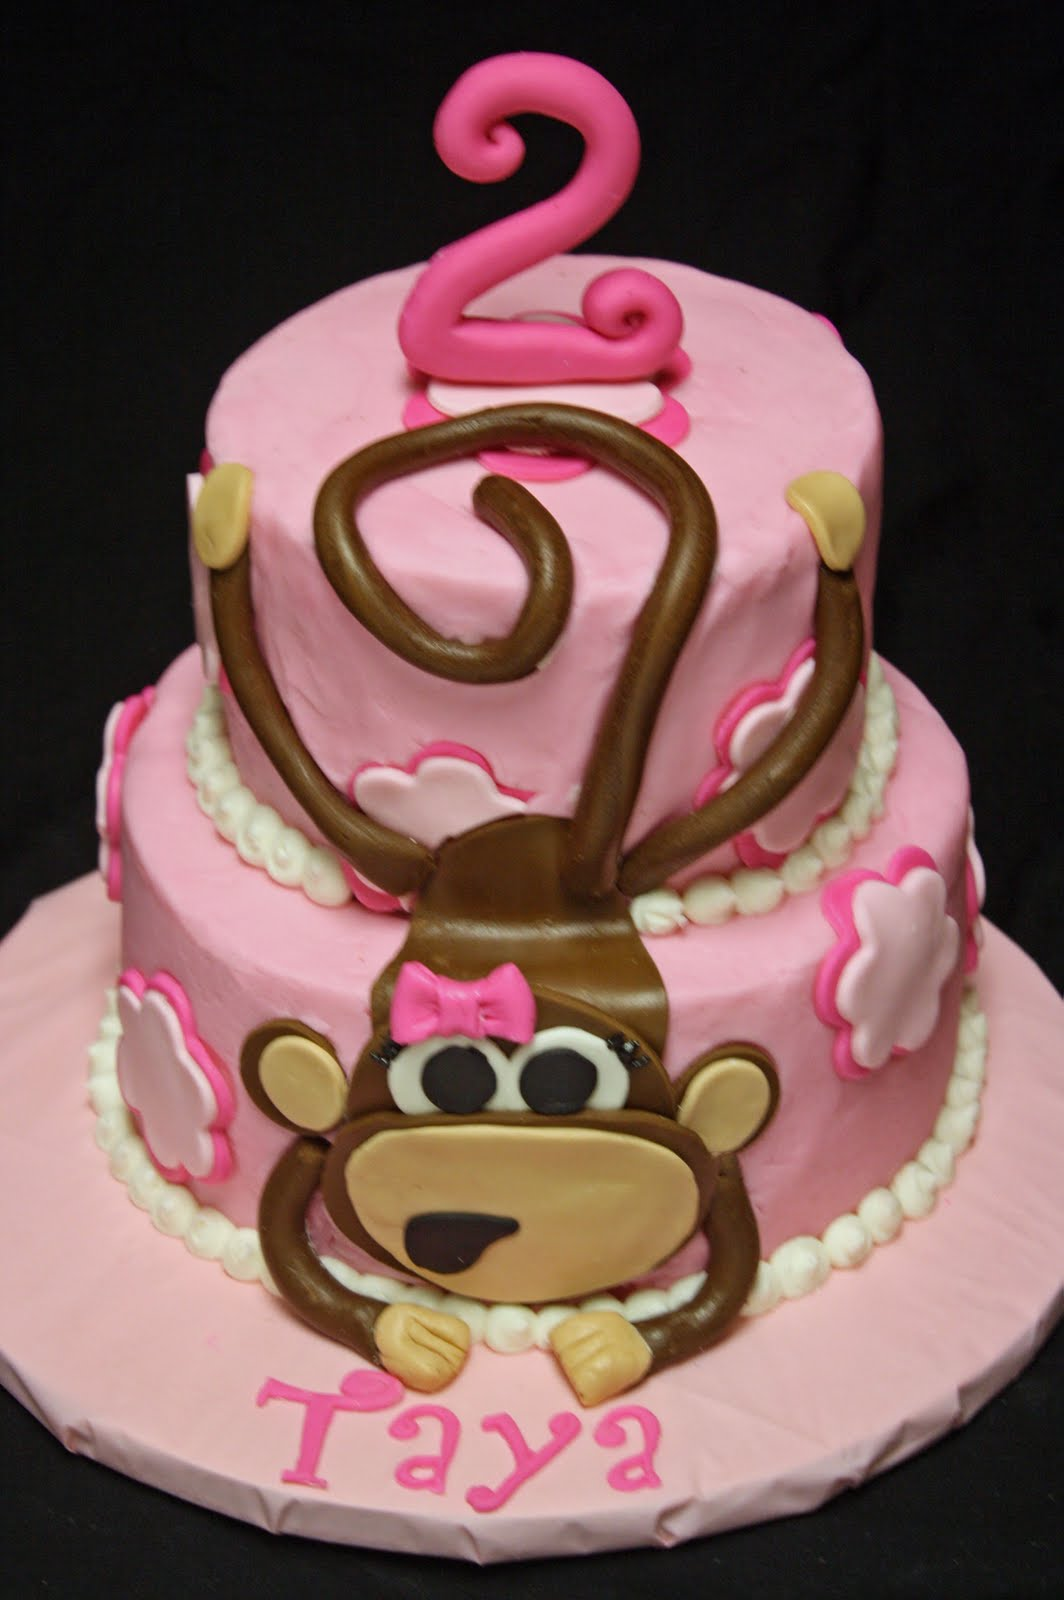 Adventures in Savings: Rose Bakes... A Pink Monkey Cake